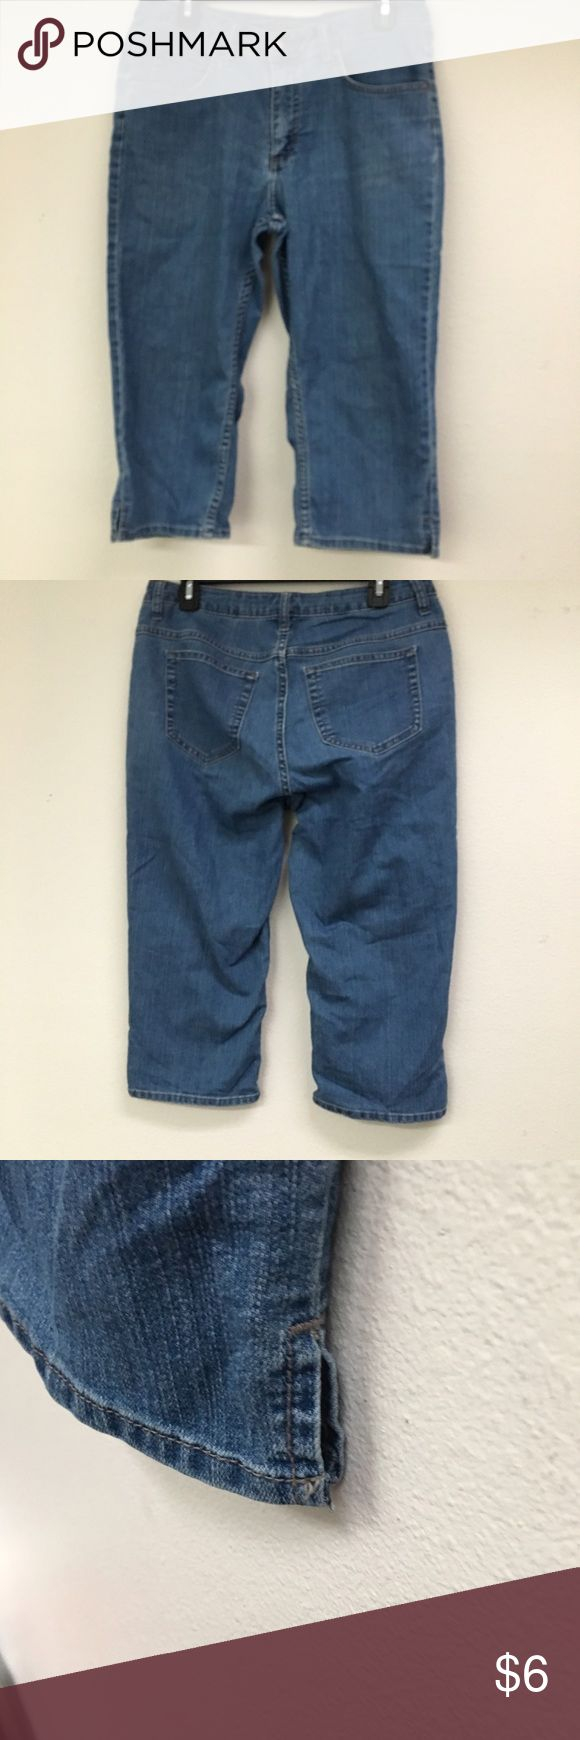 Riders by Lee Women's Capris This is a pair of good condition riders by Lee women's capris size 10.  The have slits in legs made by company Lee Jeans Ankle & Cropped